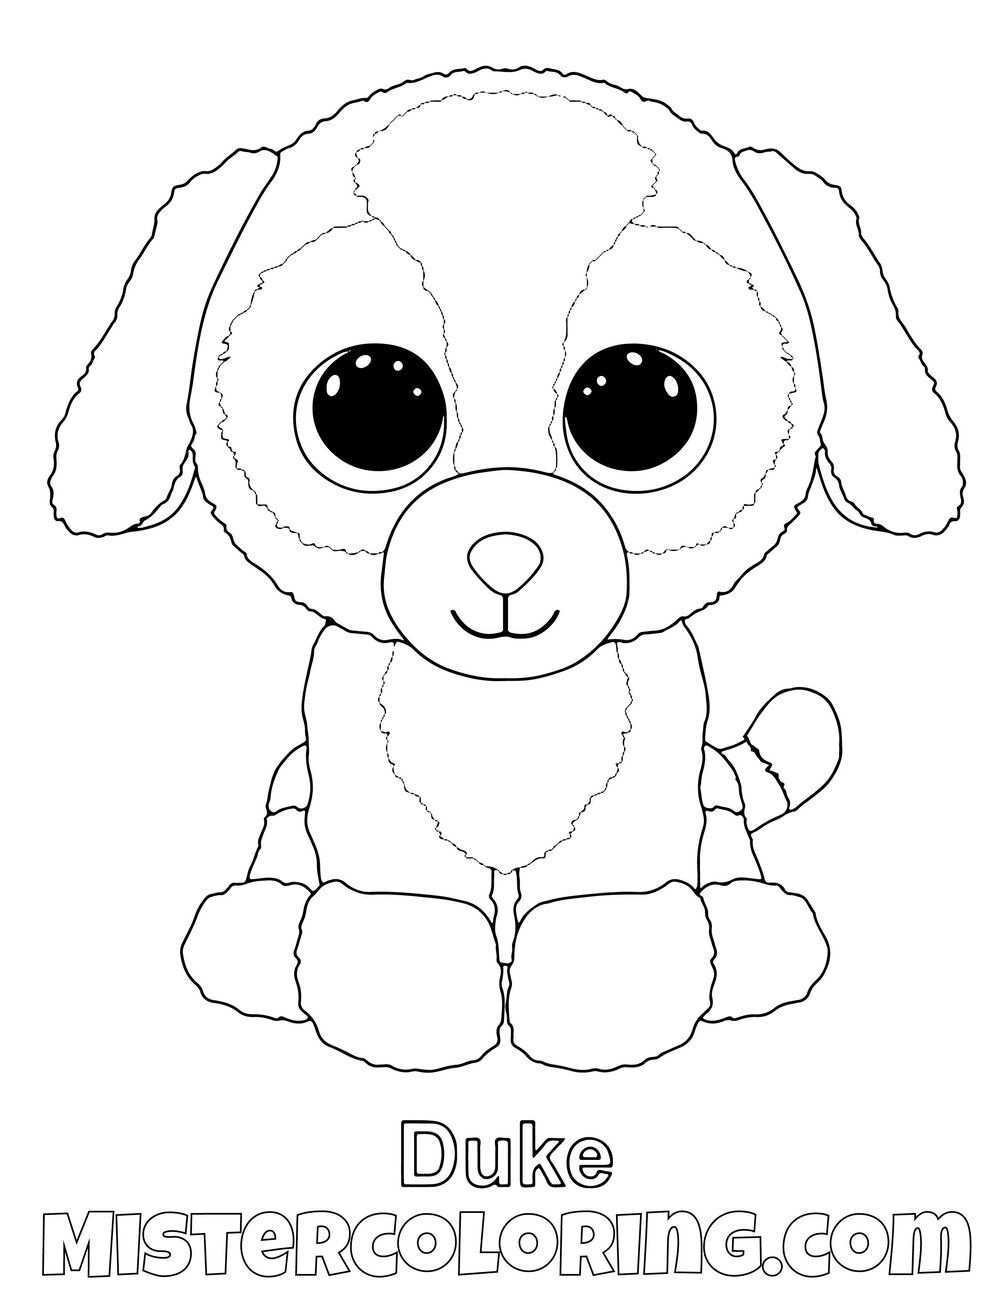 Duke Beanie Boo Coloring Pages For Kids Dog Coloring Page Beanie Boo Birthdays Baby Coloring Pages